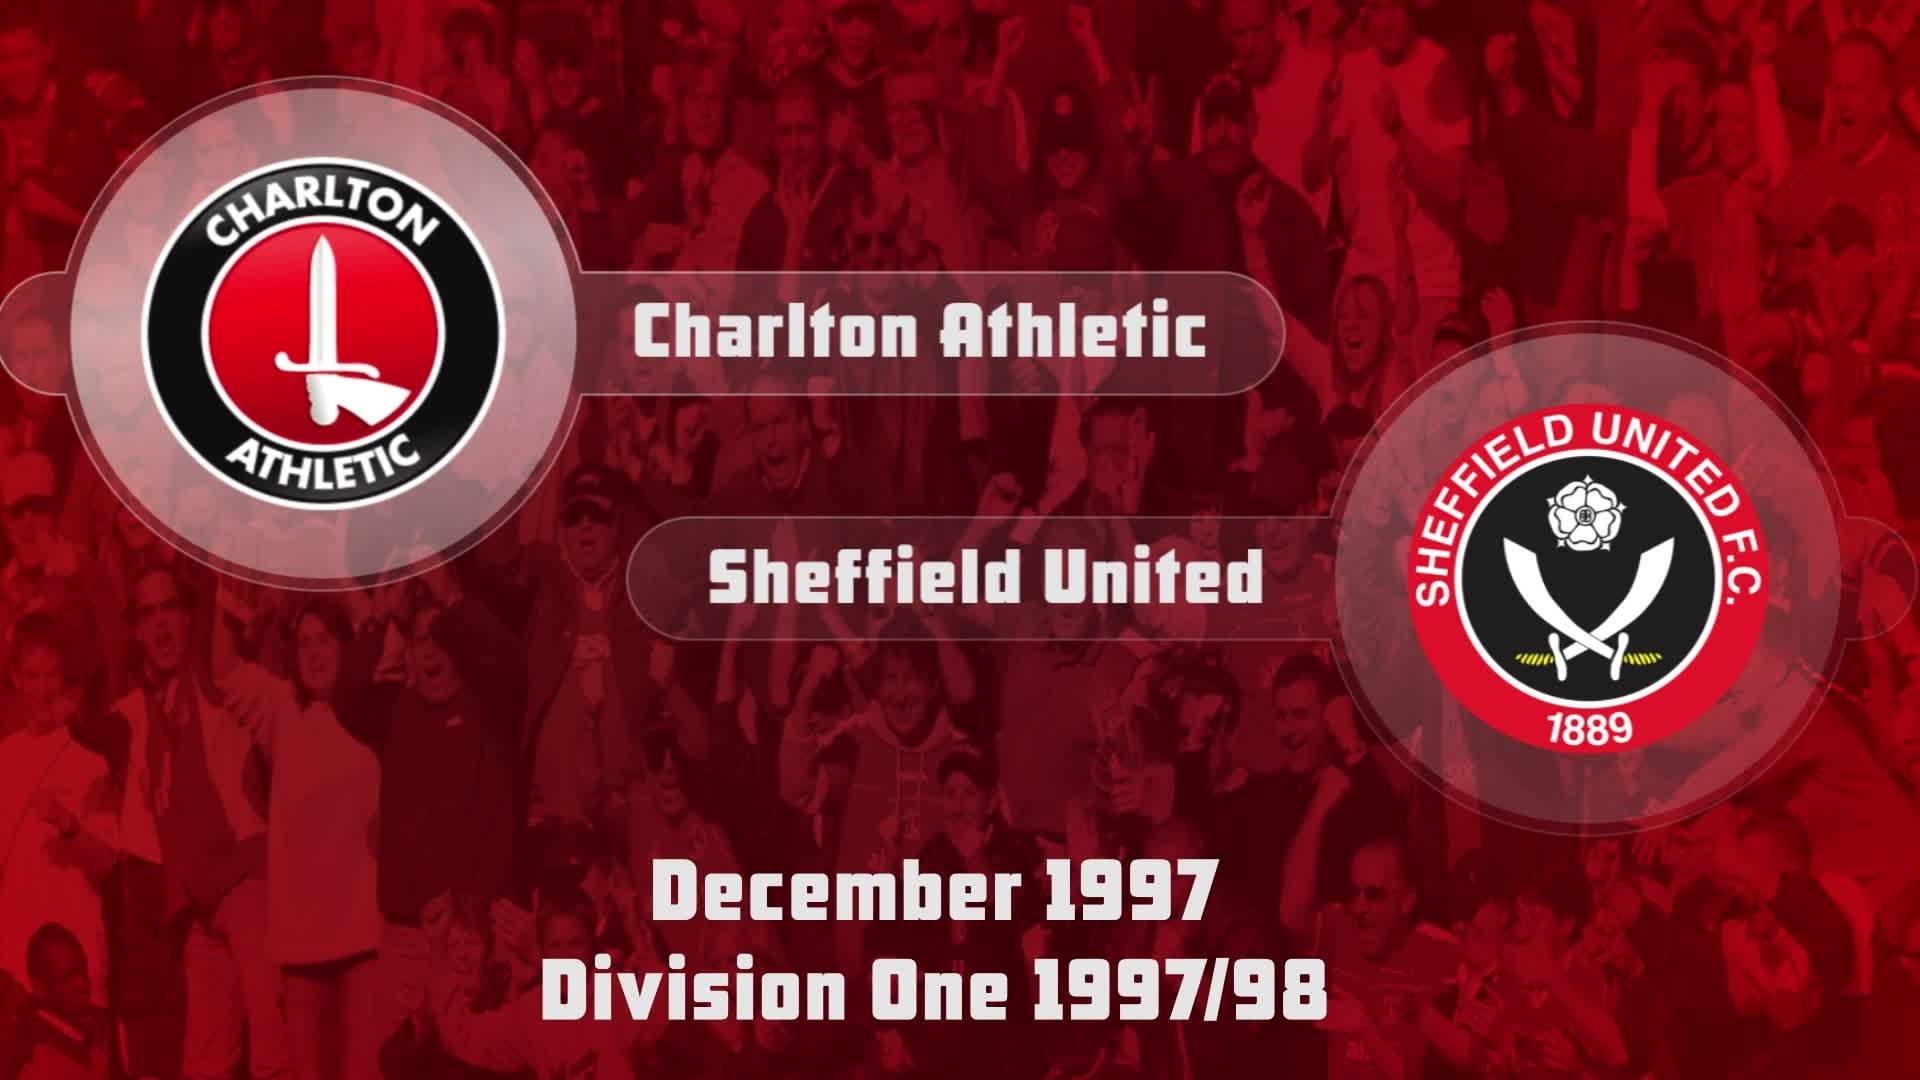 23 HIGHLIGHTS |  Charlton 2 Sheffield United 1 (Dec 1997)